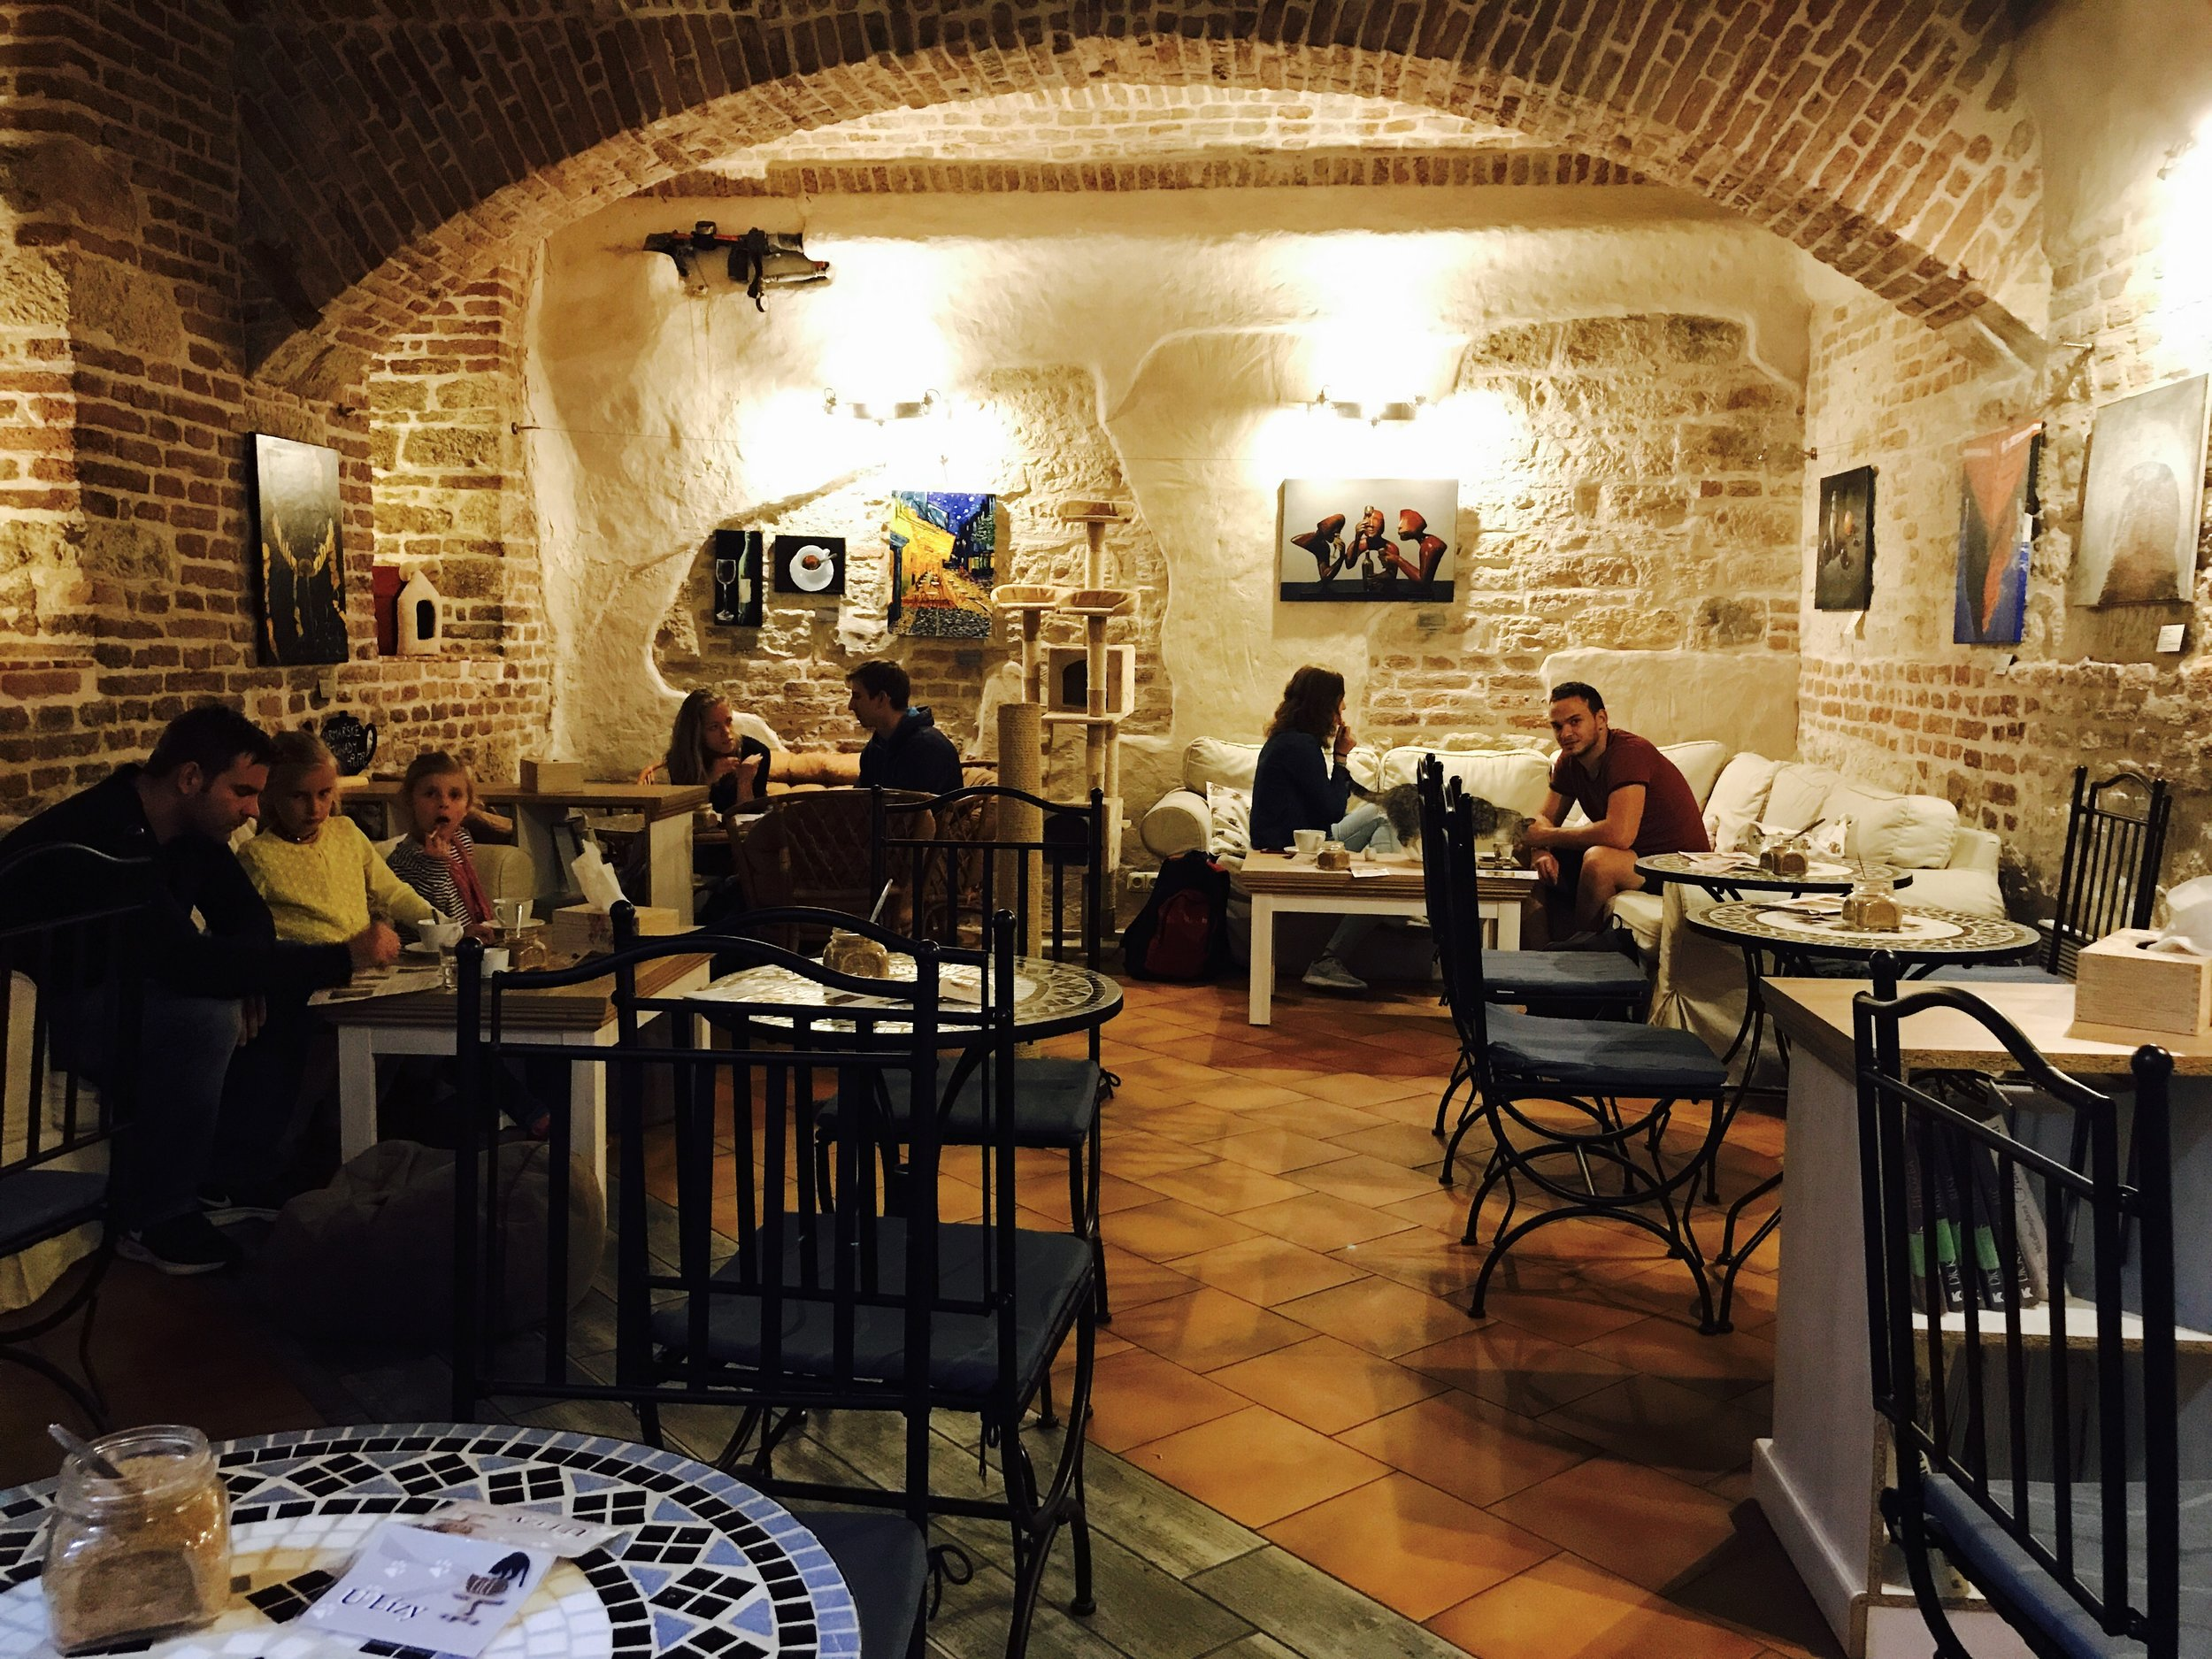 Kavarna Kocici has two levels, including a basement with cozy seating